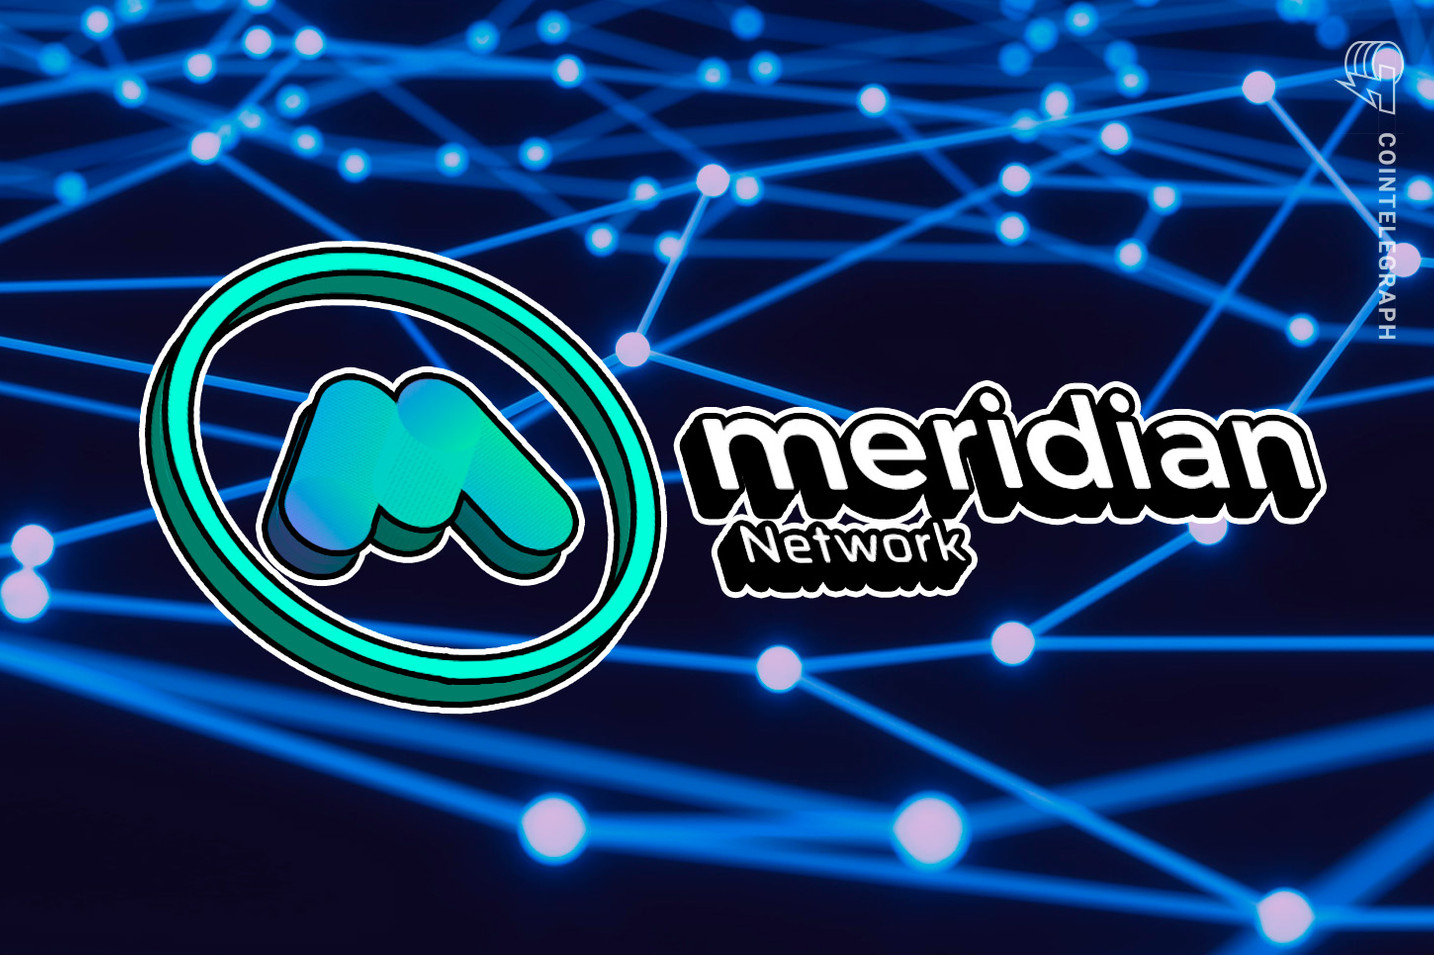 The Meridian Network brings end-user oversight to the world of DeFi